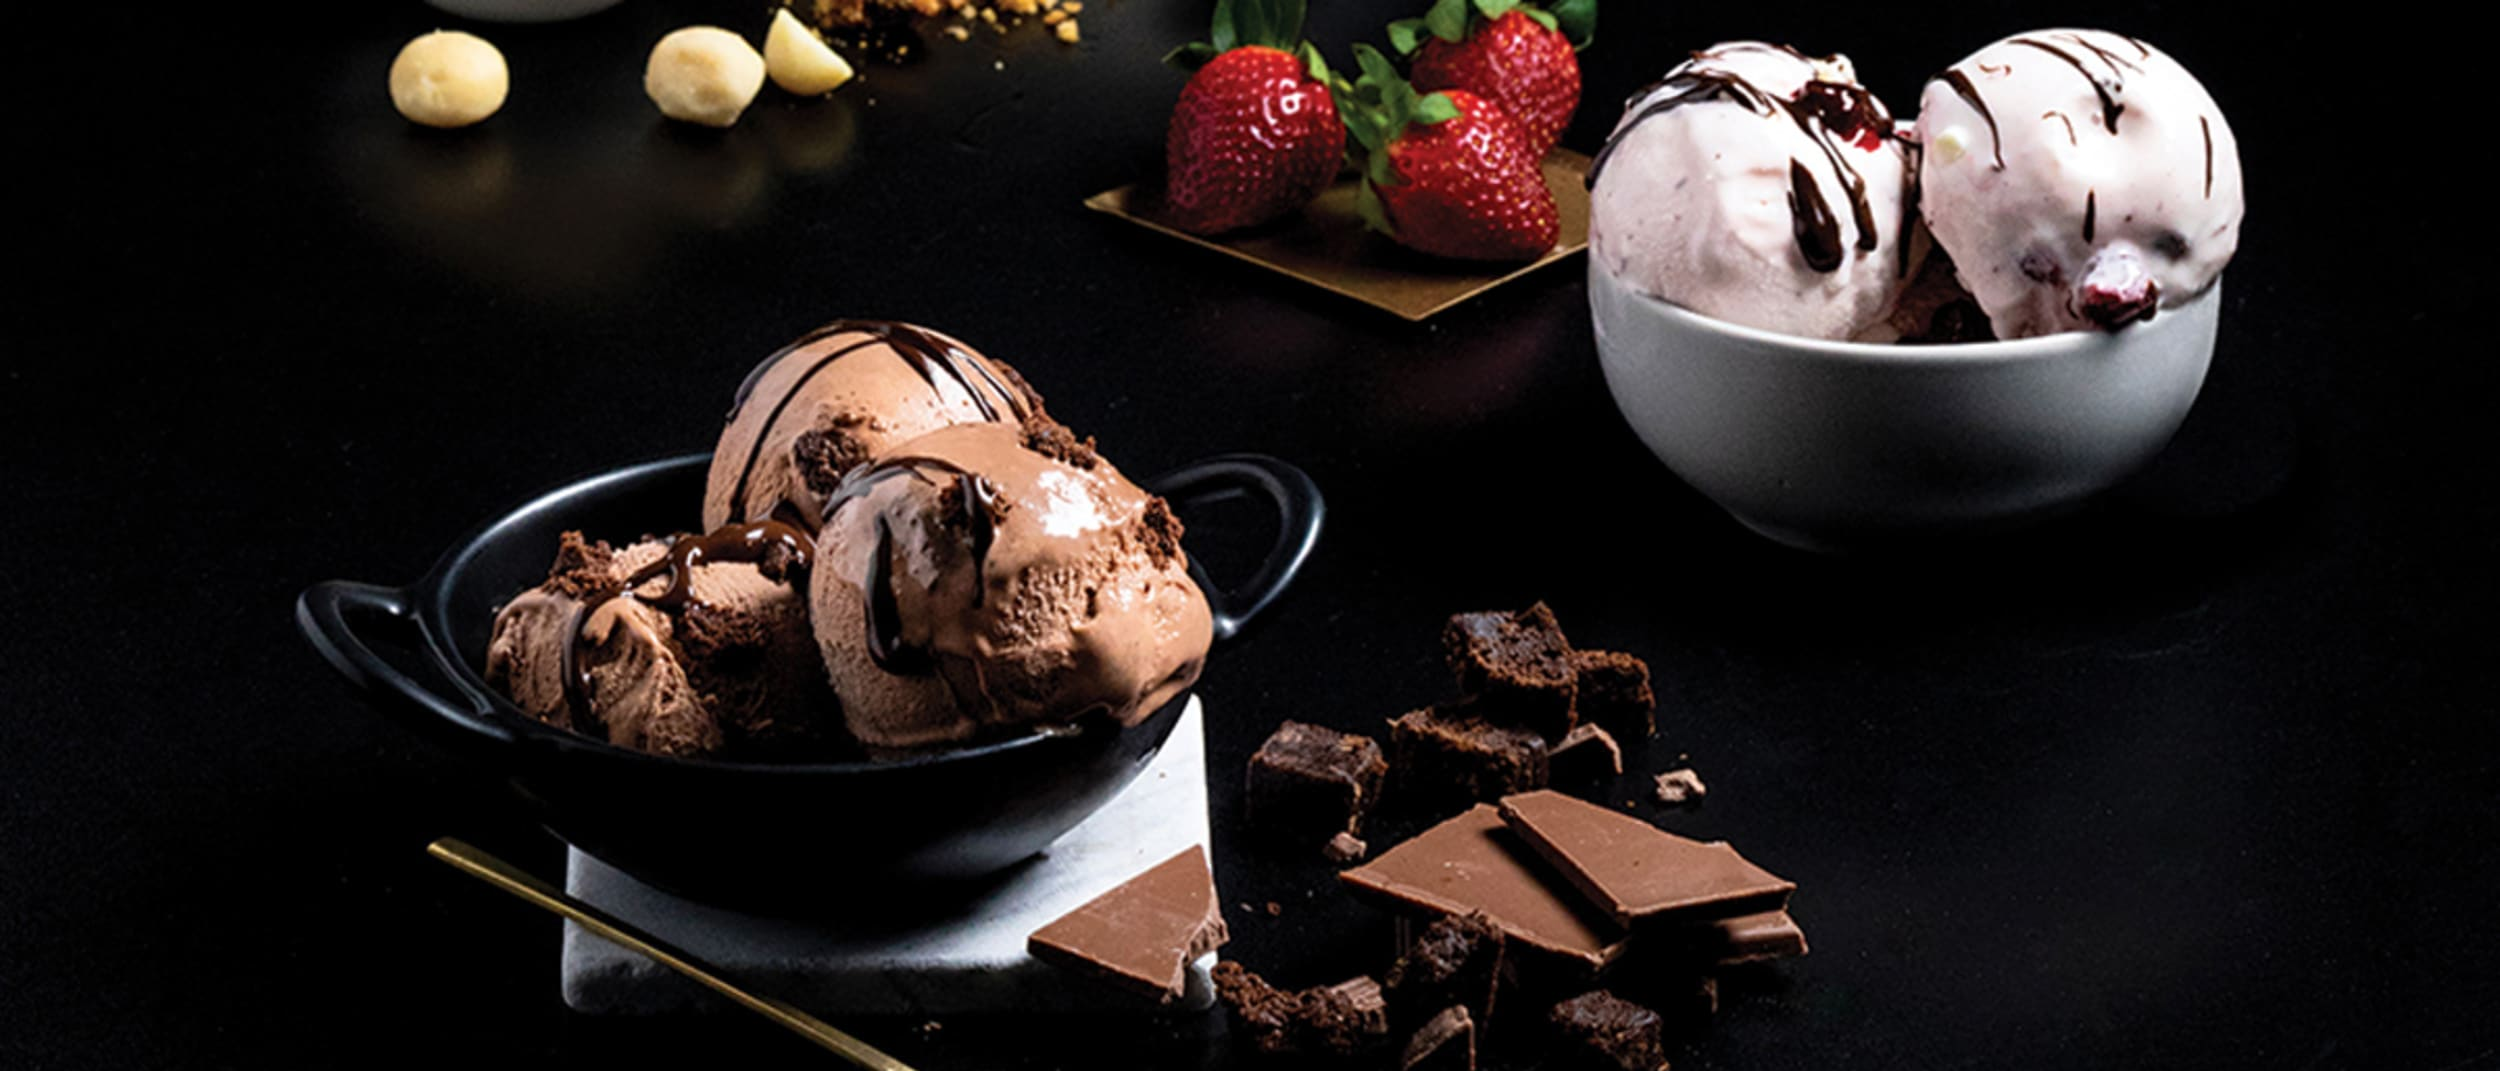 Gelatissimo: introducing The Deluxe Range